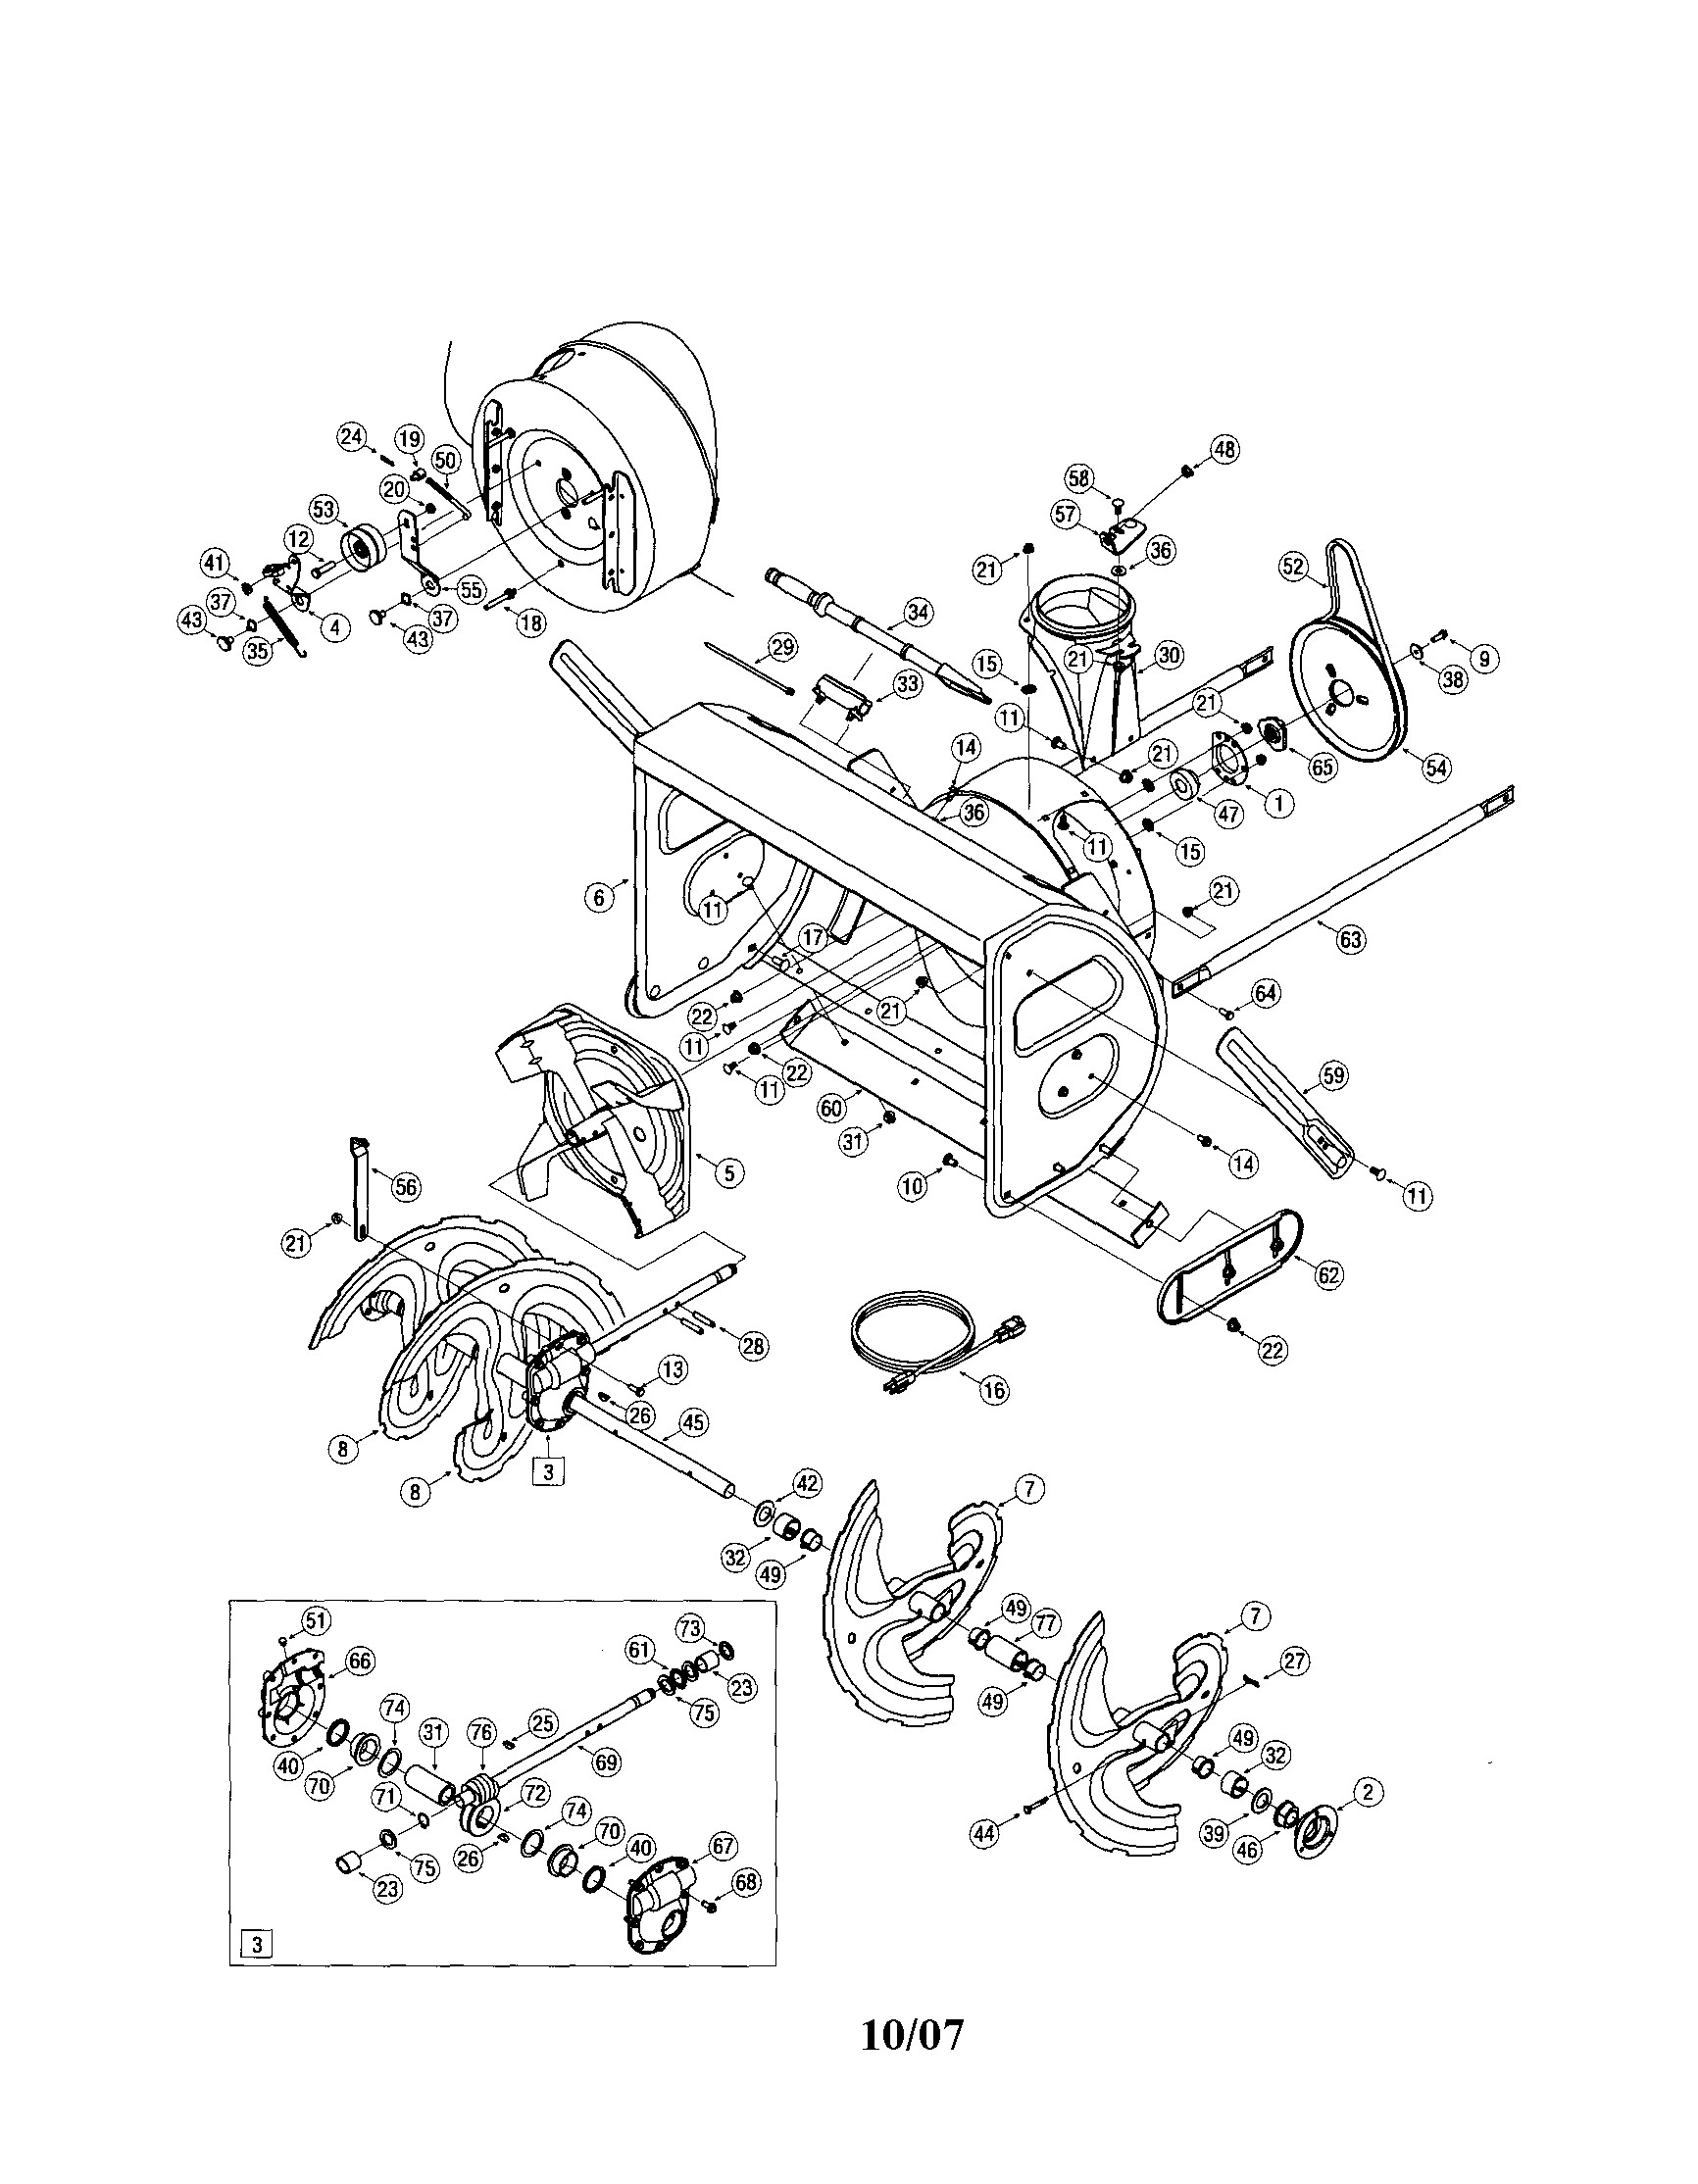 Craftsman Leaf Blower Parts Diagram Get Craftsman Parts and Free Manual for Model 247 Gas Snow Of Craftsman Leaf Blower Parts Diagram